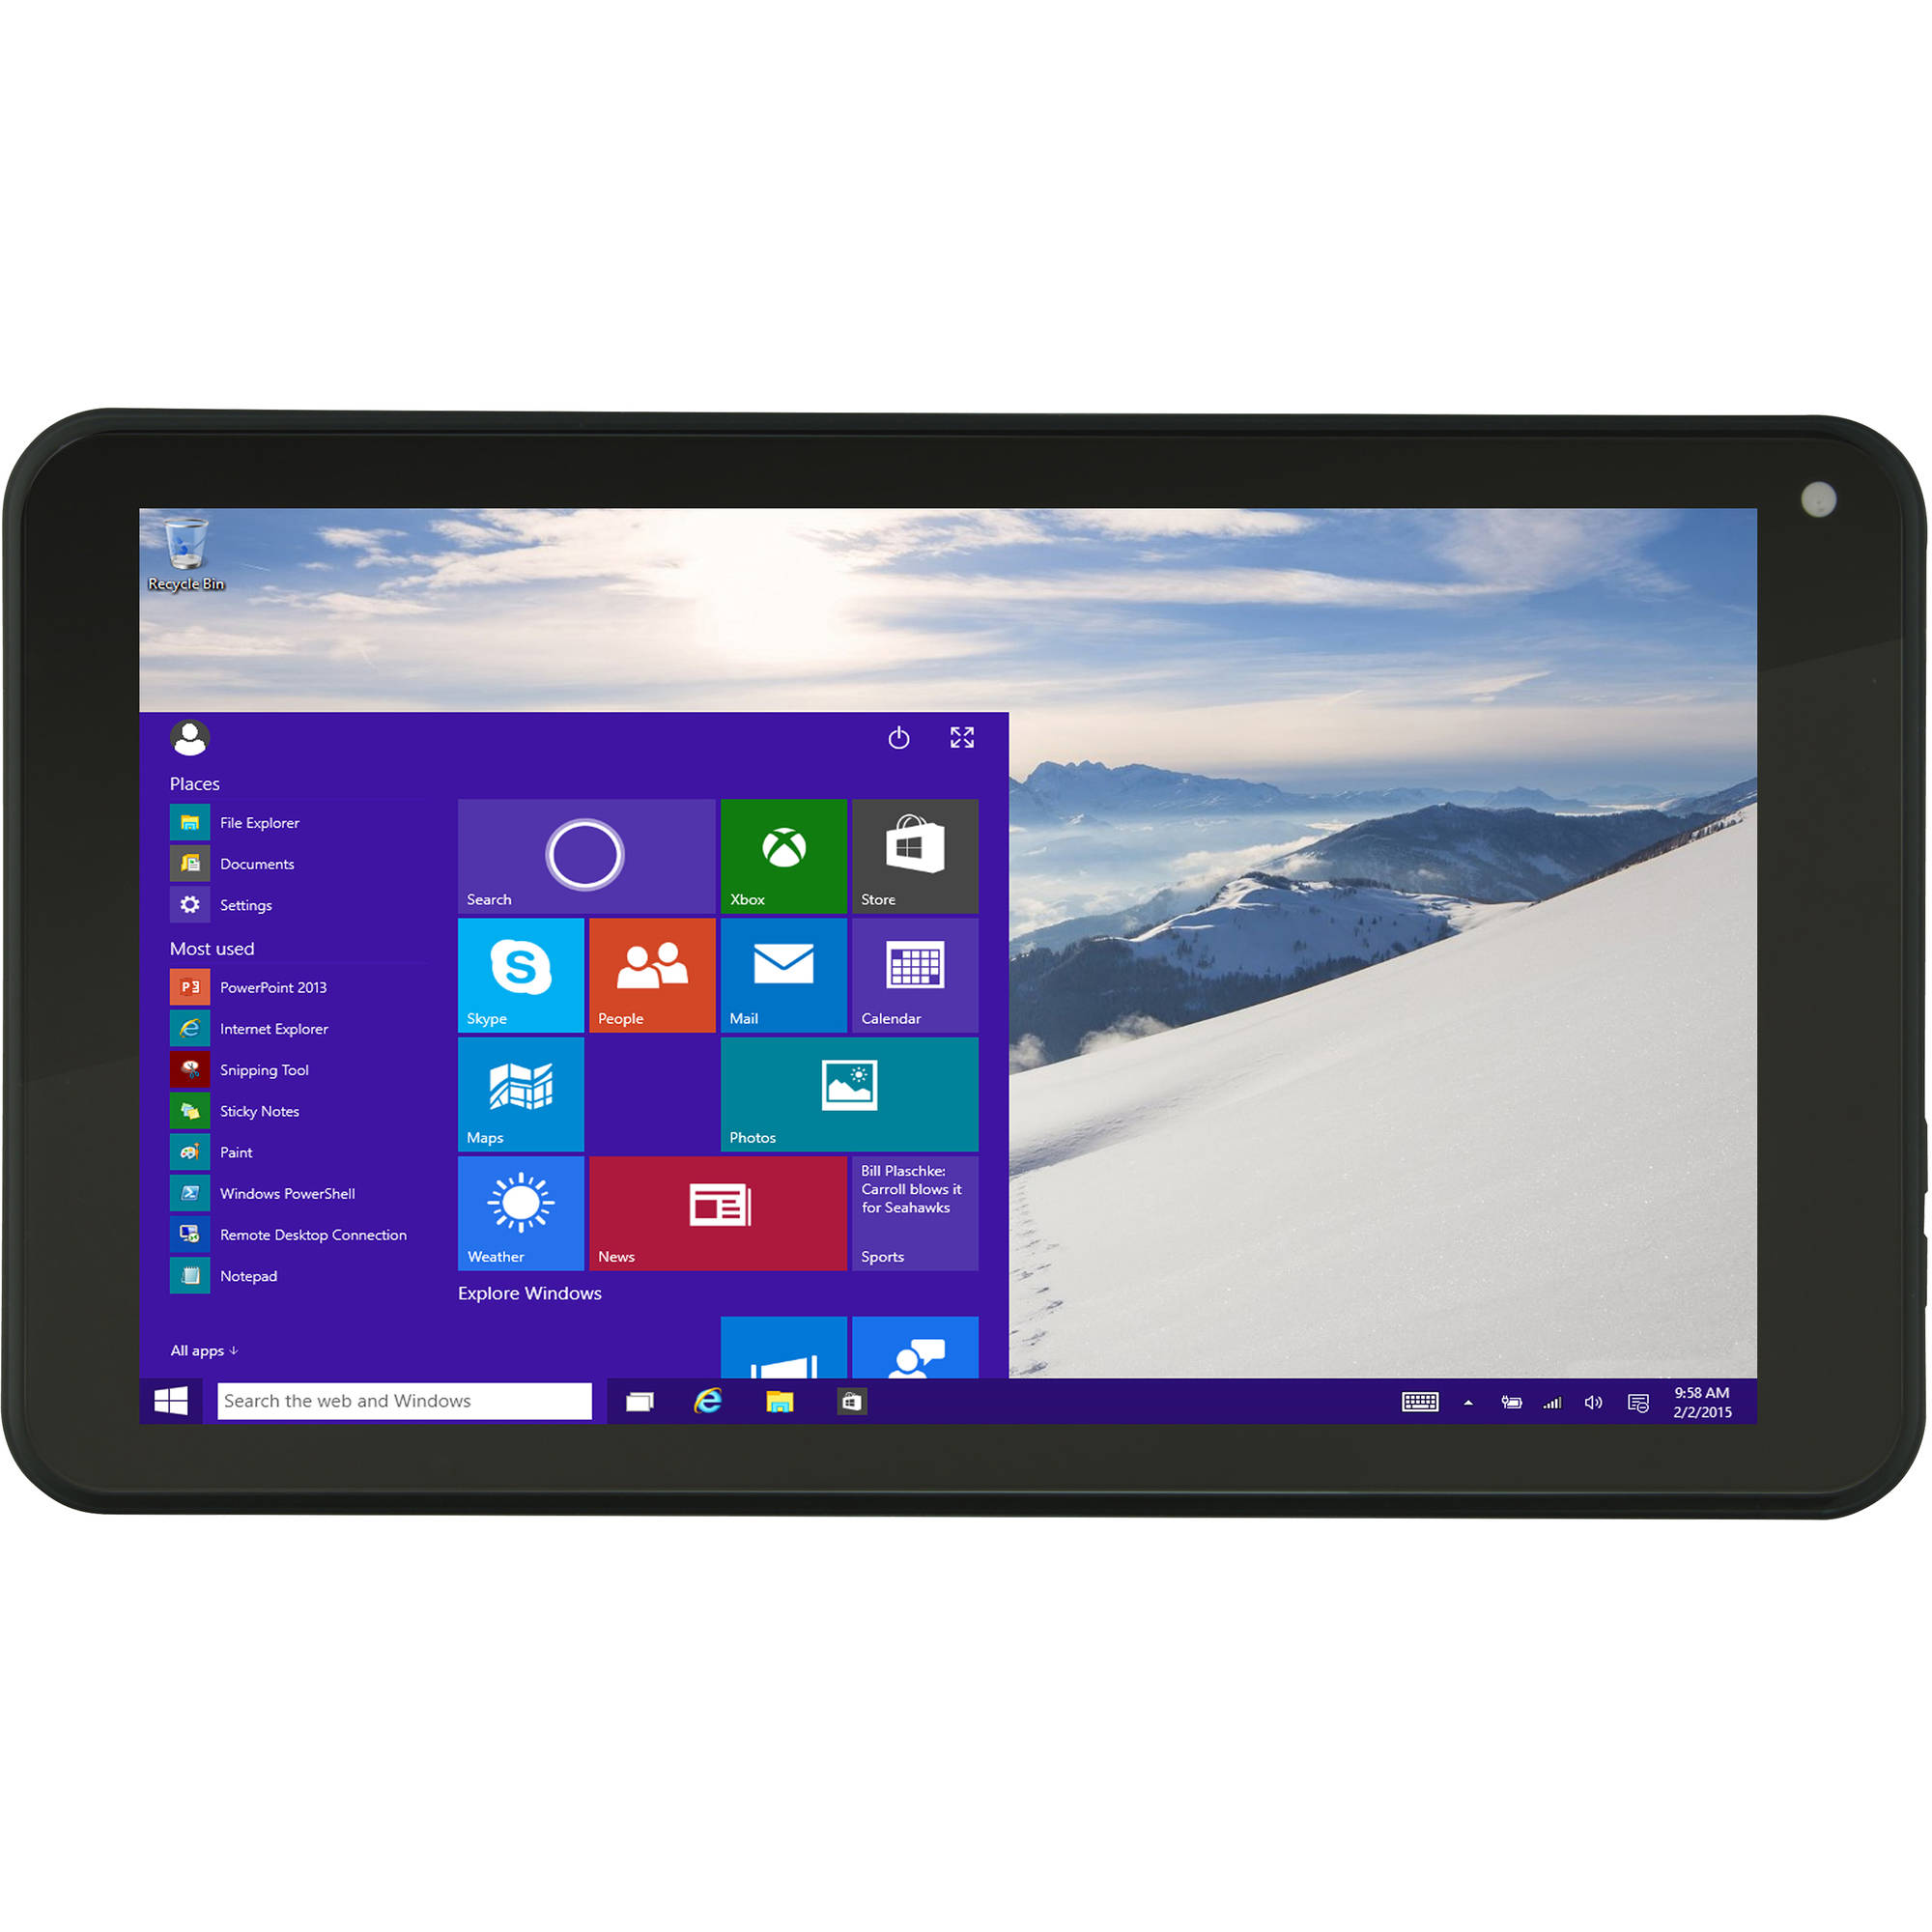 "Vulcan Journey 7"" Tablet 16GB Intel Atom Z3735G Quad-Core Processor Windows 10 Operating System"